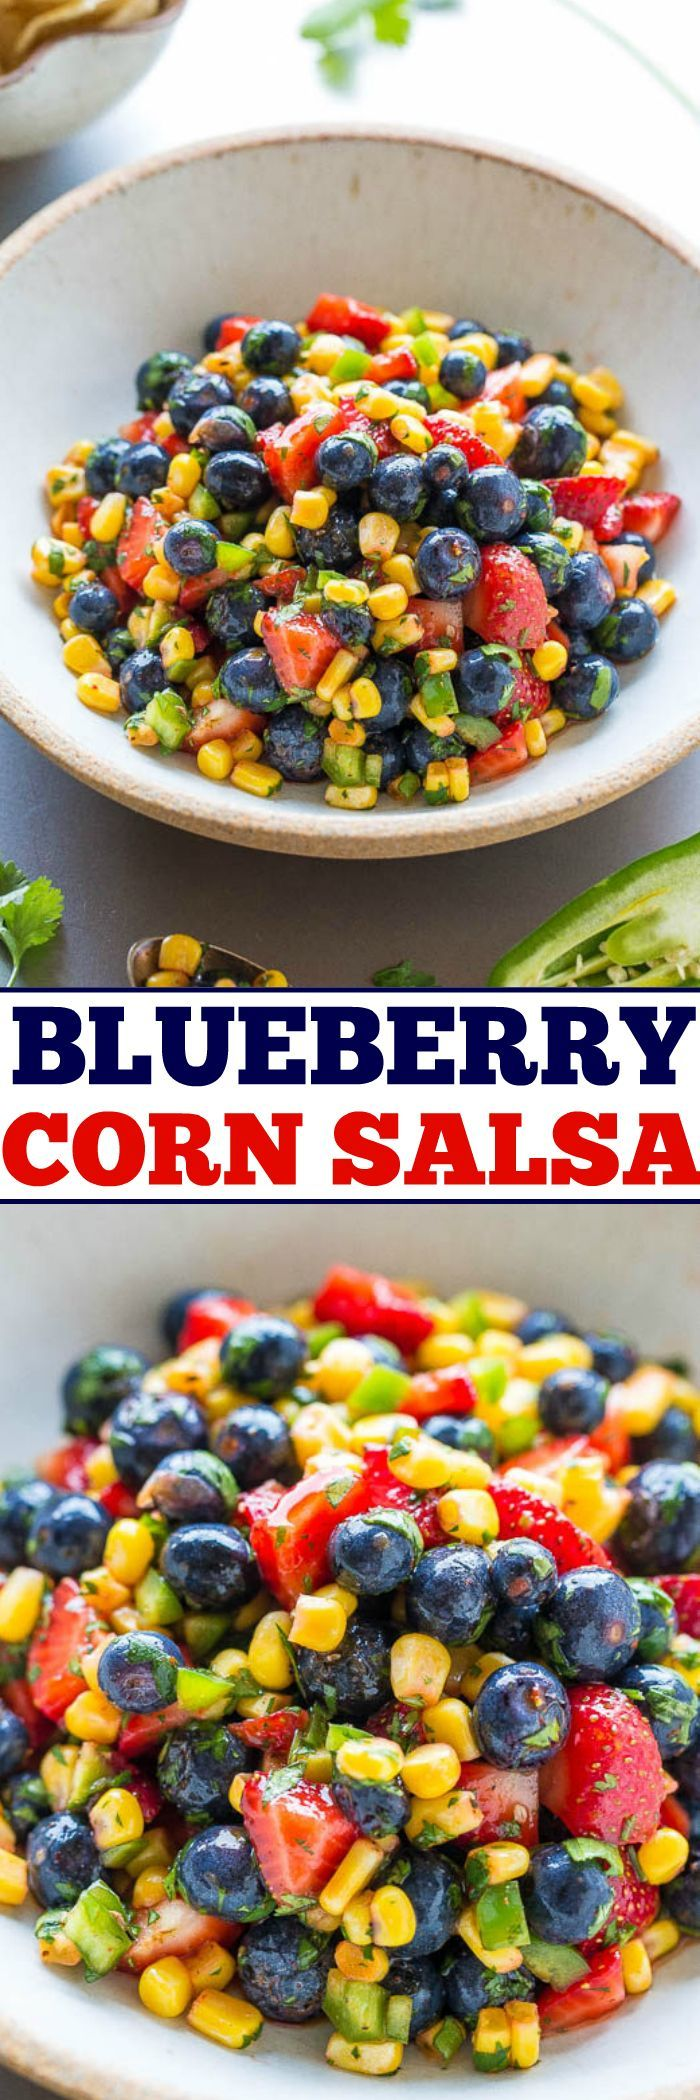 Blueberry Corn Salsa - Berries, corn, jalapeno, cilantro, and more in this EASY and healthy salsa that's ready in 5 minutes!! So good you can eat it on it's own like a salad! The sweet fruit balances the heat and it's a guaranteed HIT!!